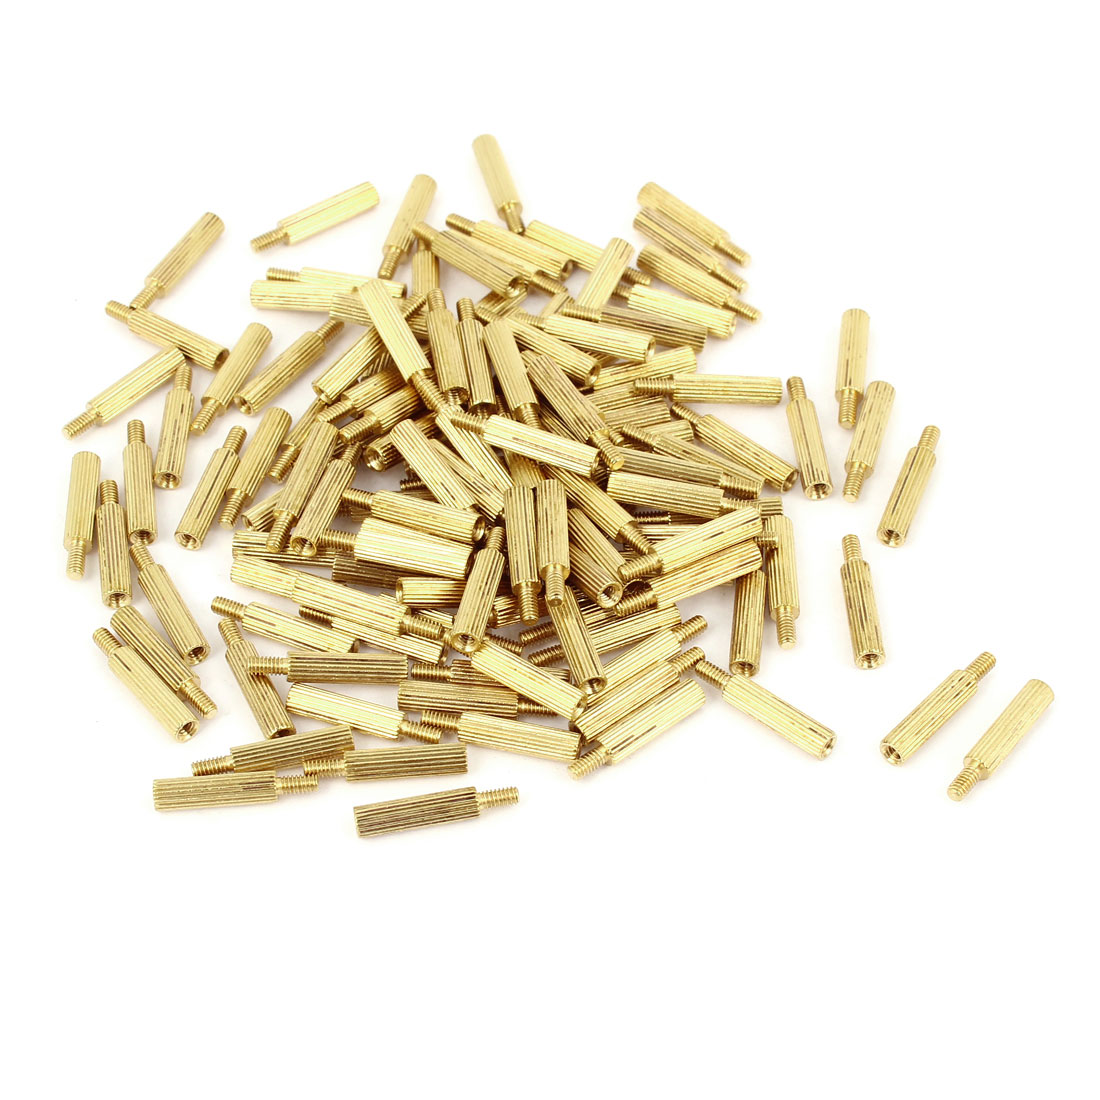 100Pcs Male to Female Thread PCB Board Brass Pillars Standoff M2x12mm